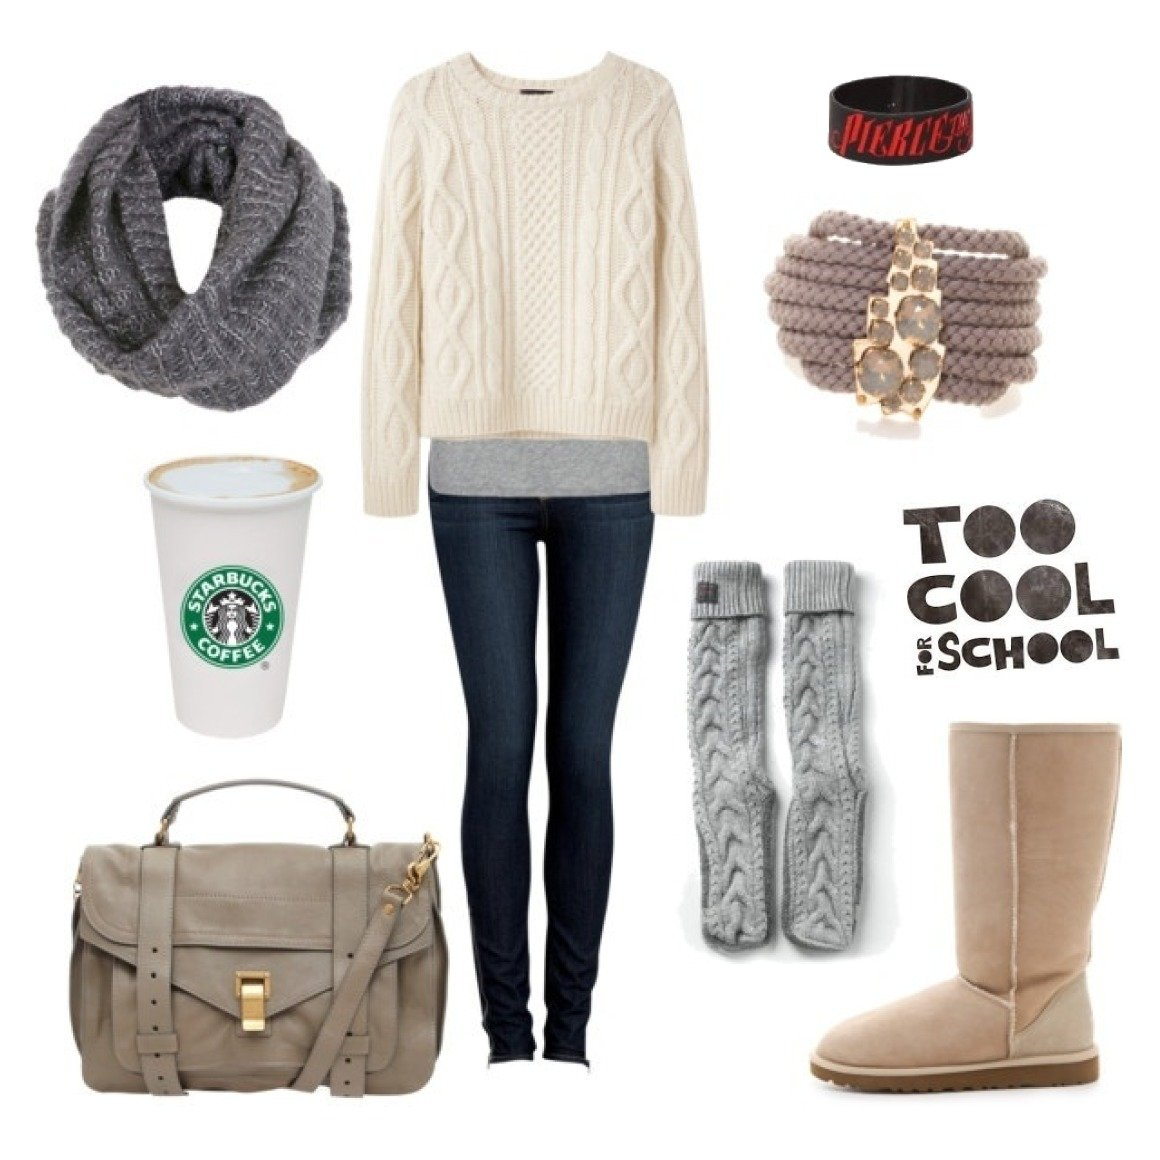 10 Lovable Cute Outfits Ideas For School stunning back to school outfit fashionoah 2020